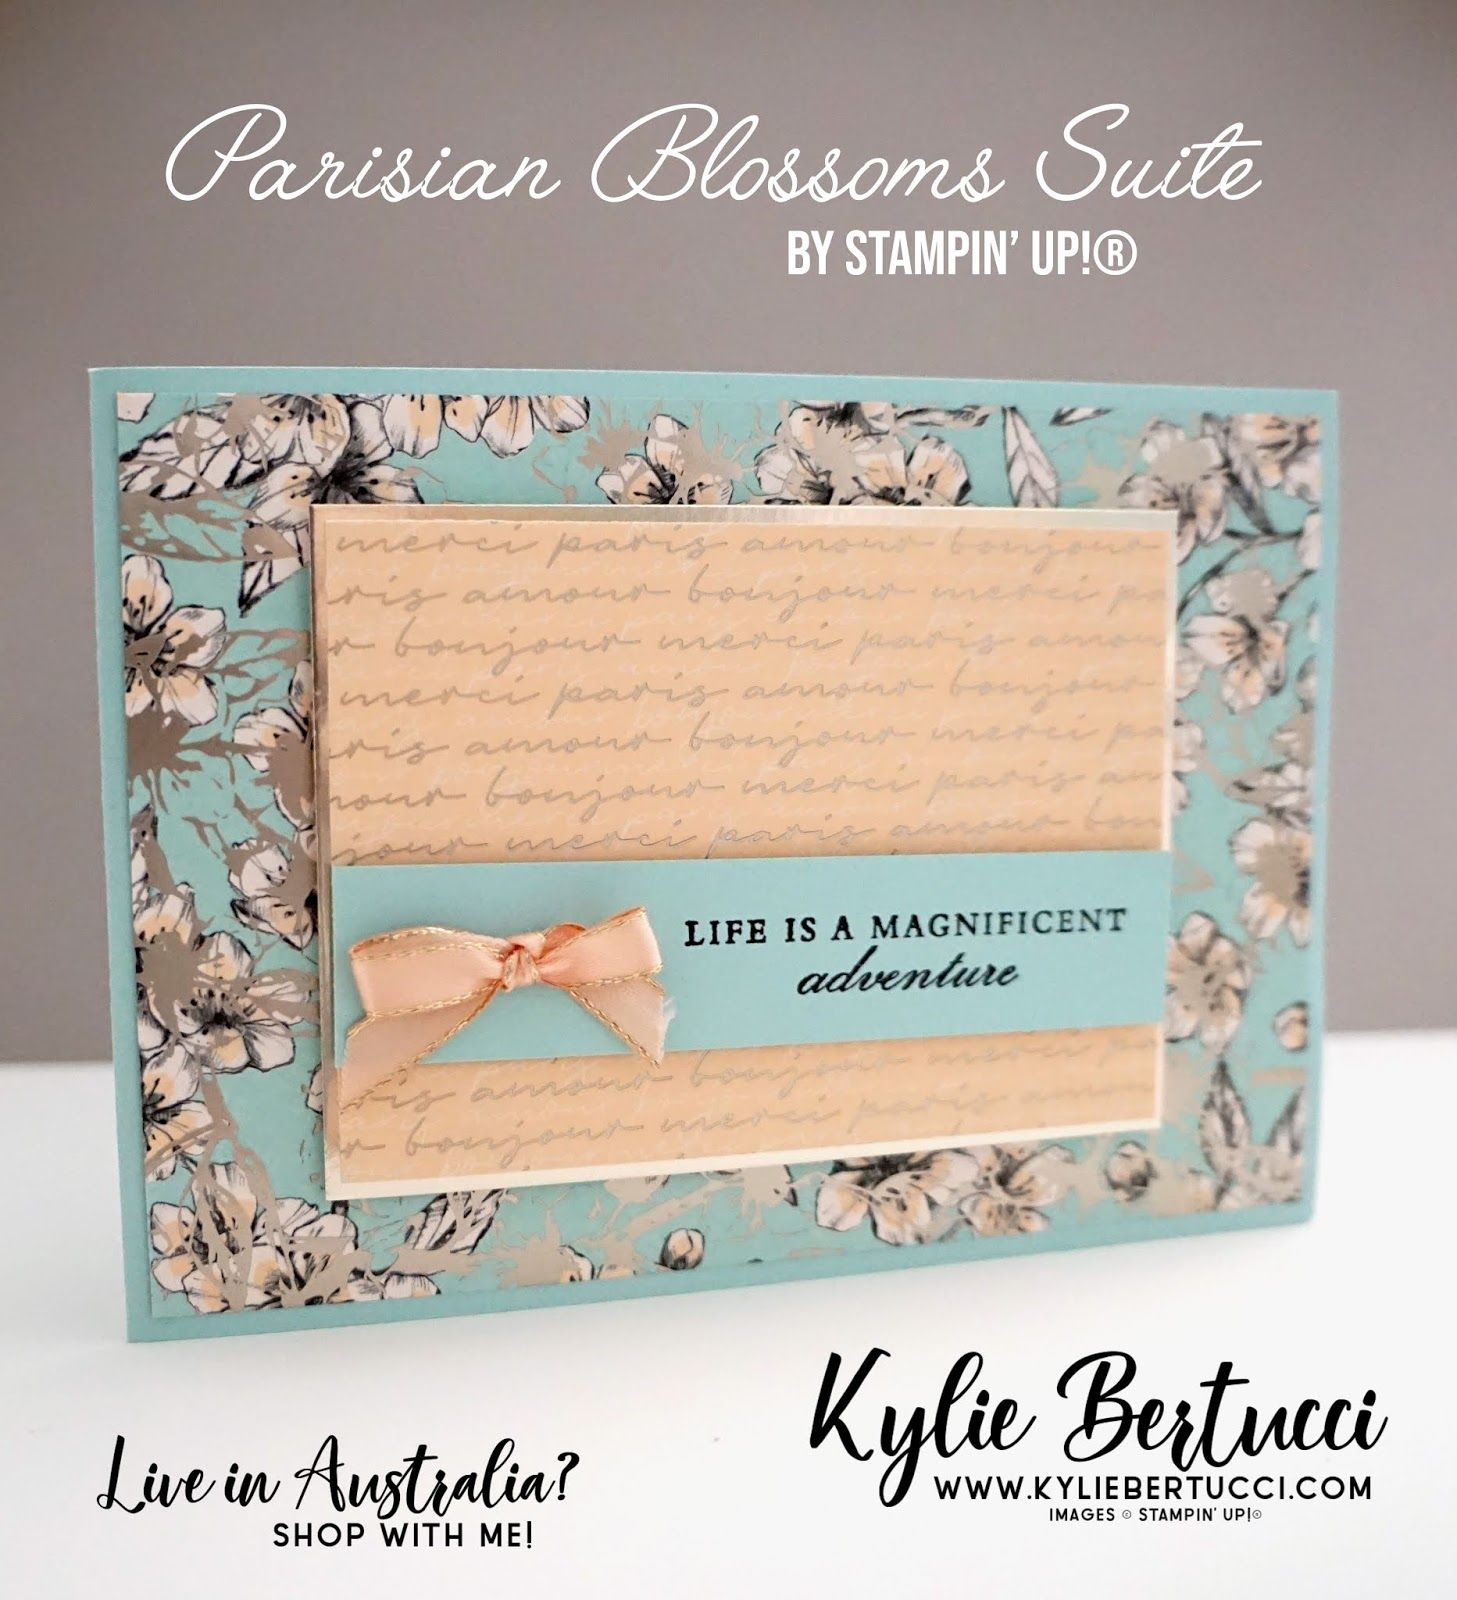 Card Template Tutorial Ideas Kylie Bertucci Stampin Up Australia Stampinup Cardmaking Handmadecard Rubberstamps St Cards Card Templates Simple Cards